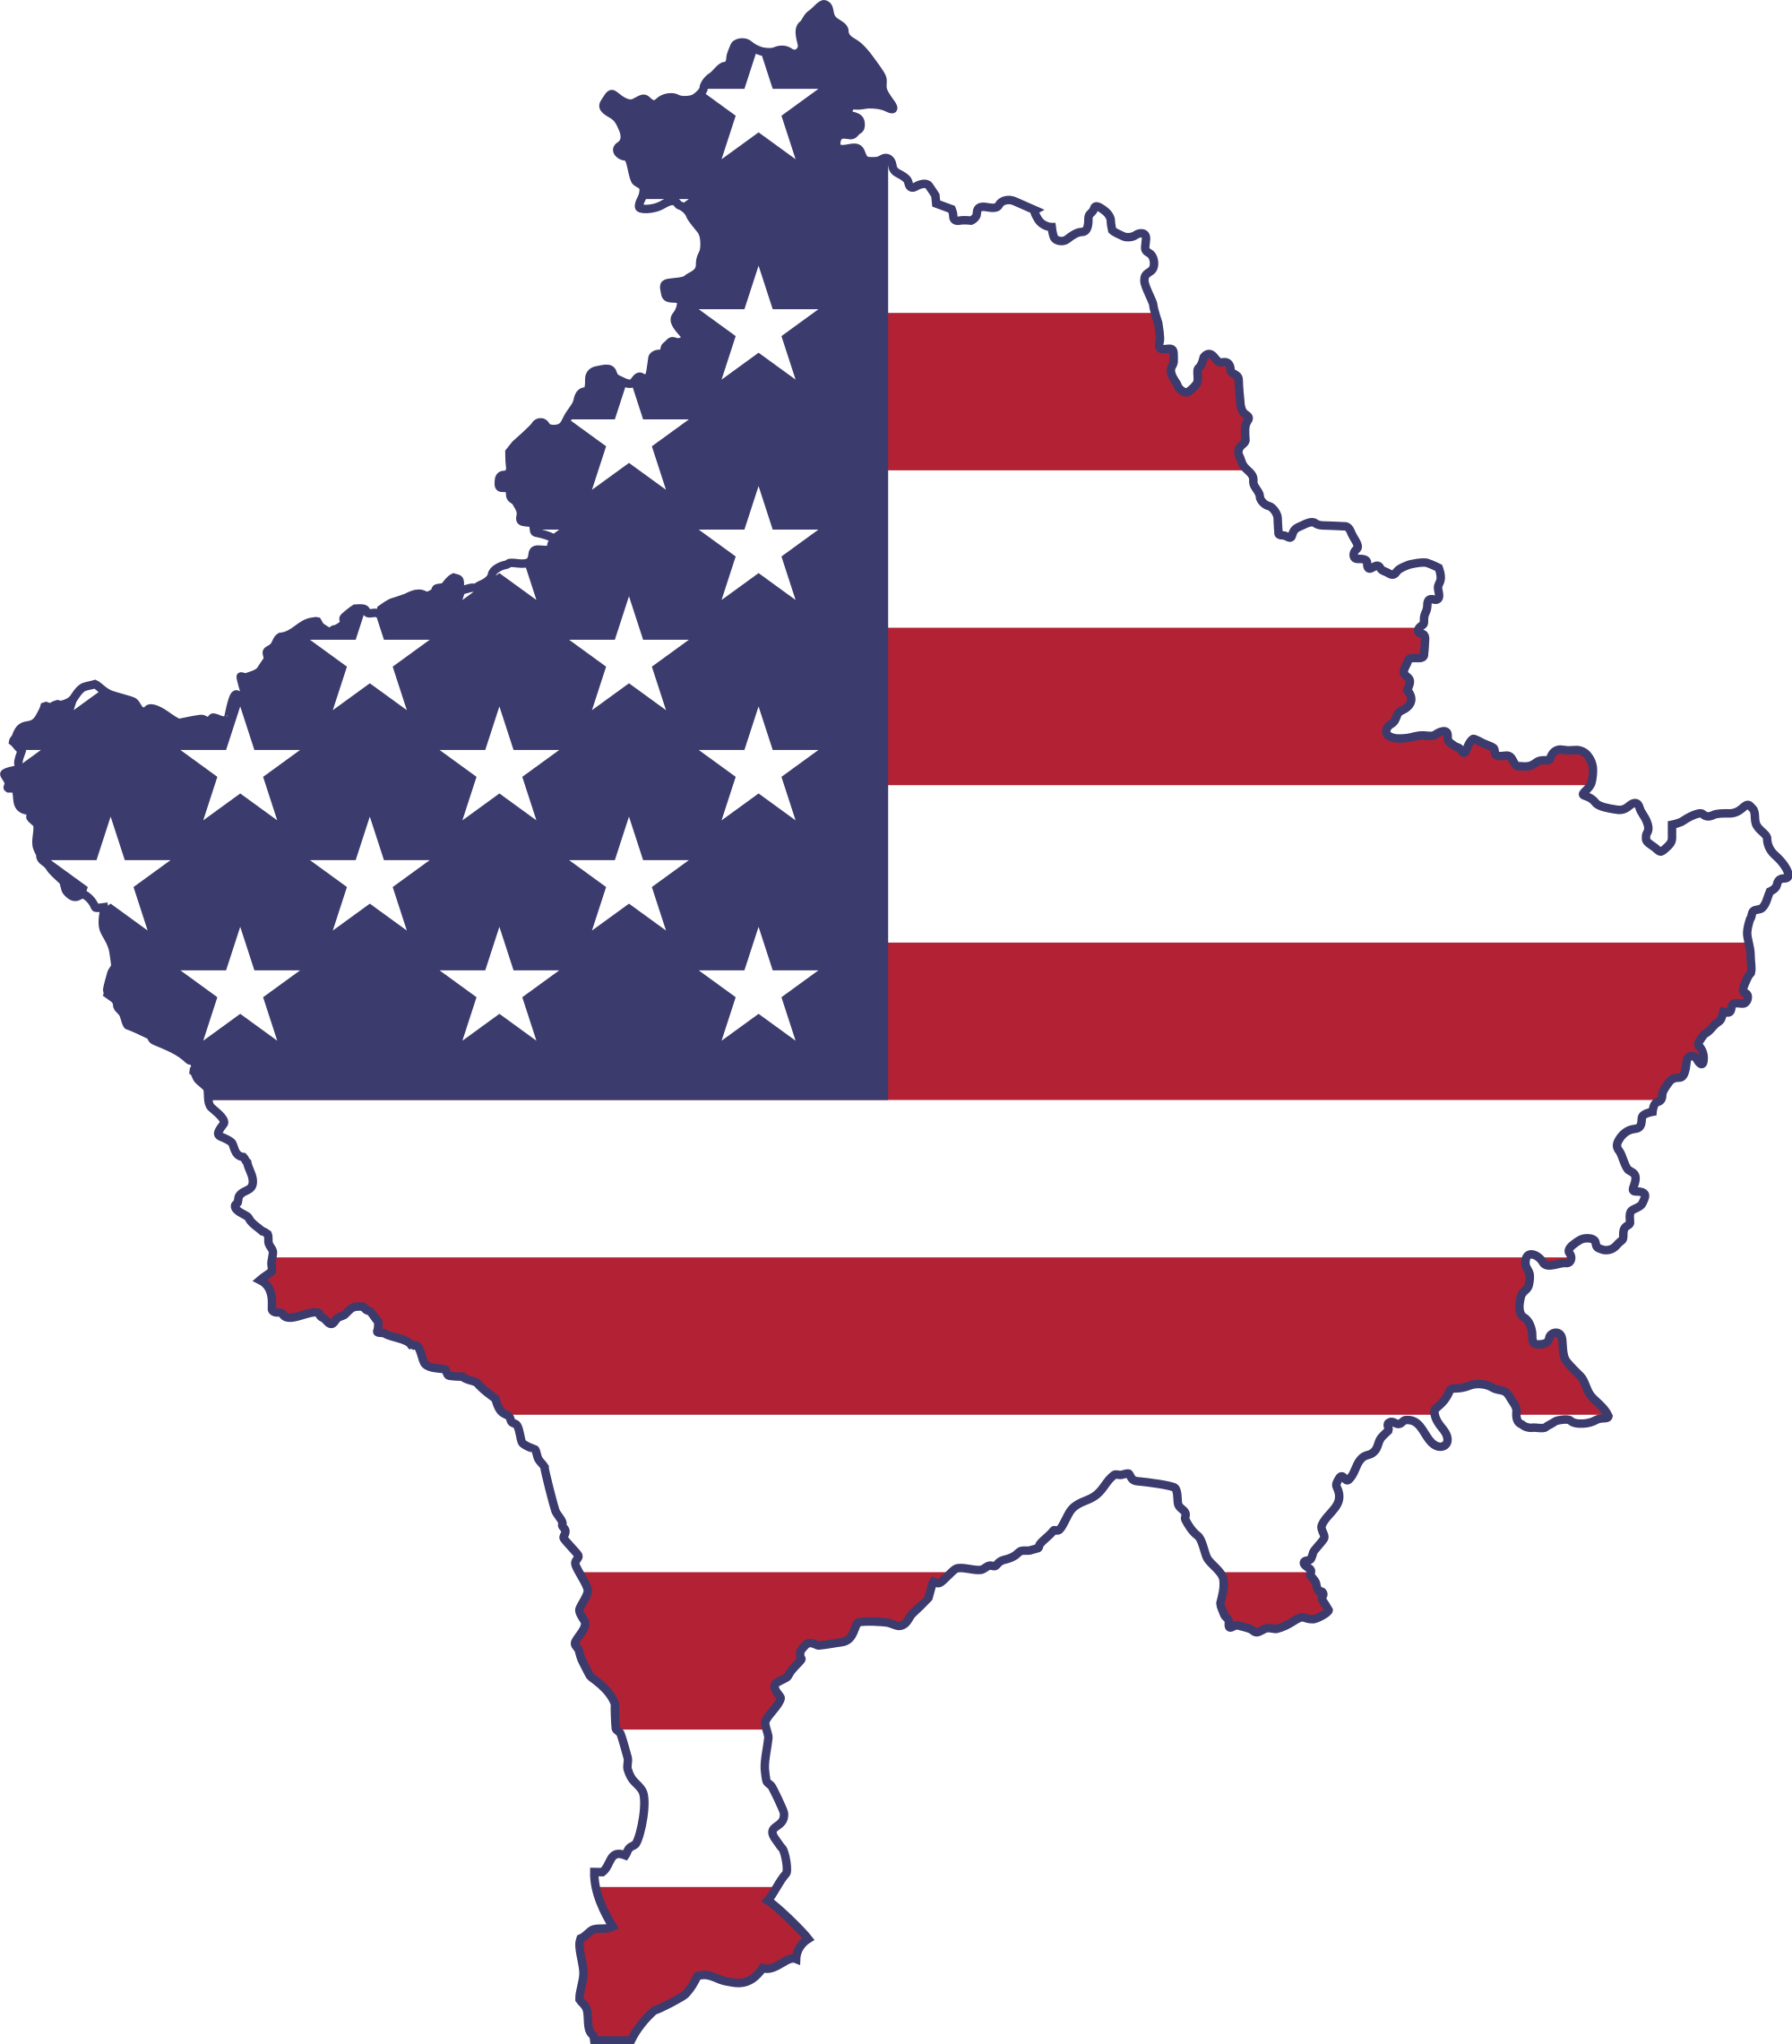 Emt svg american flag. File kosovo with of